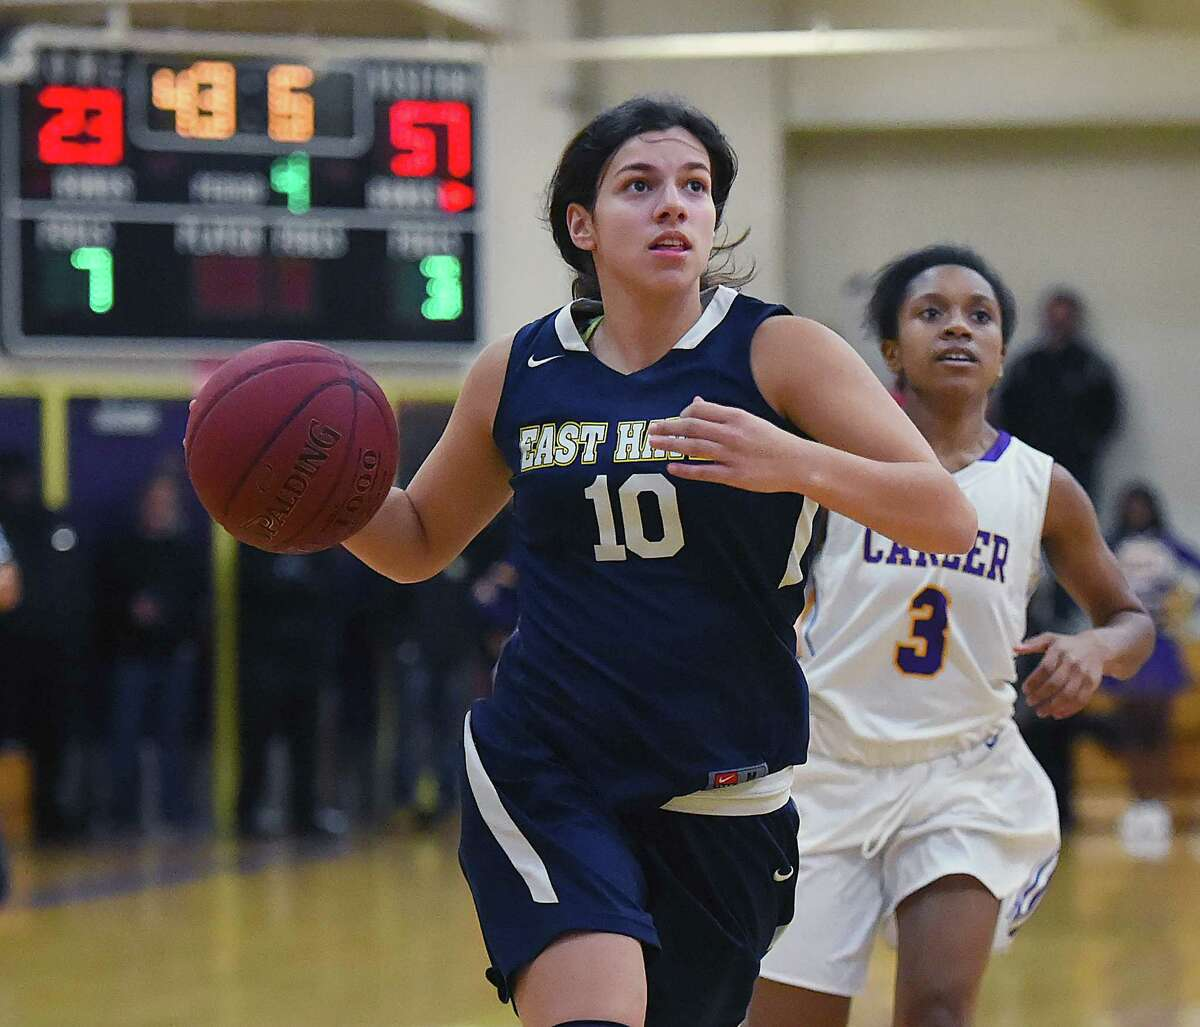 East Haven's Olivia Coyle drives past Career's Nicole Washington, Thursday, Feb. 1, 2018, at the Career High School gymnasium in New Haven. East Haven won, 59-25.